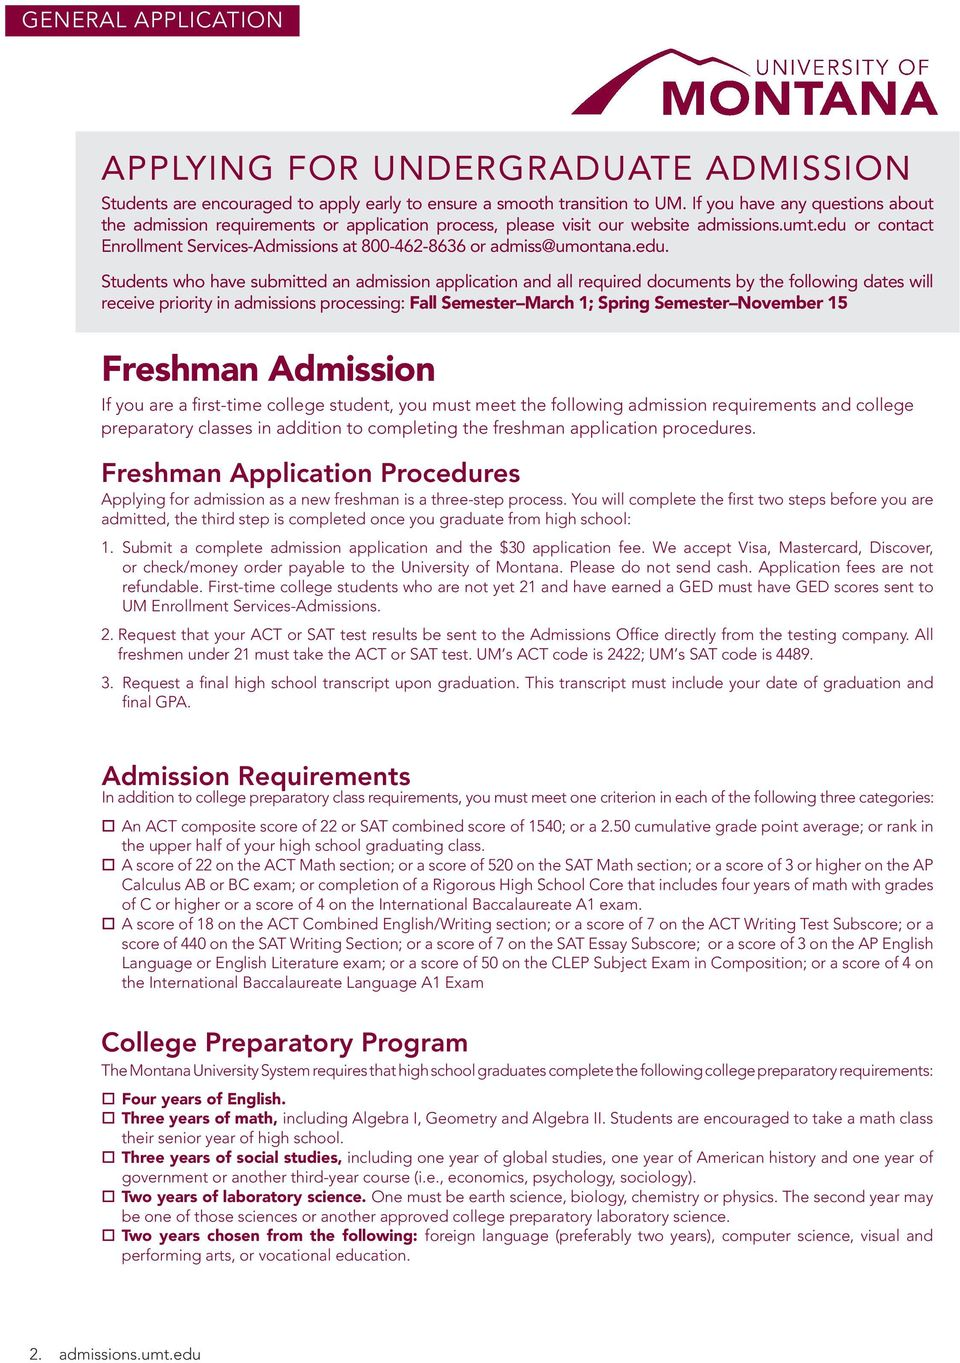 edu or contact Enrollment Services-Admissions at 800-462-8636 or admiss@umontana.edu. Students who have submitted an admission application and all required documents by the following dates will